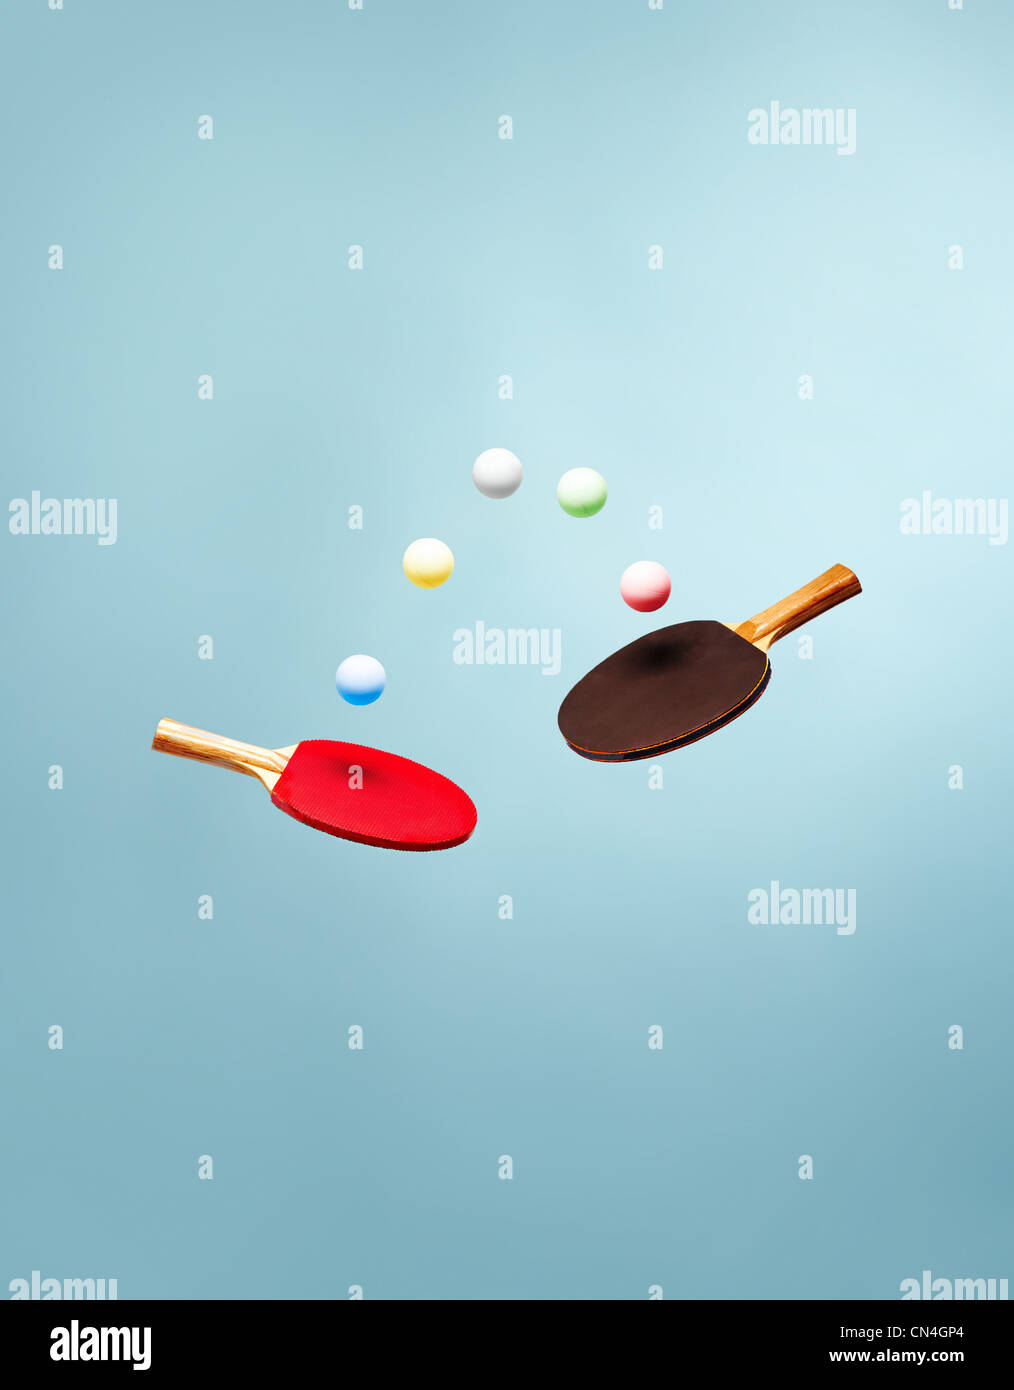 Table tennis bats and balls suspended in the air - Stock Image